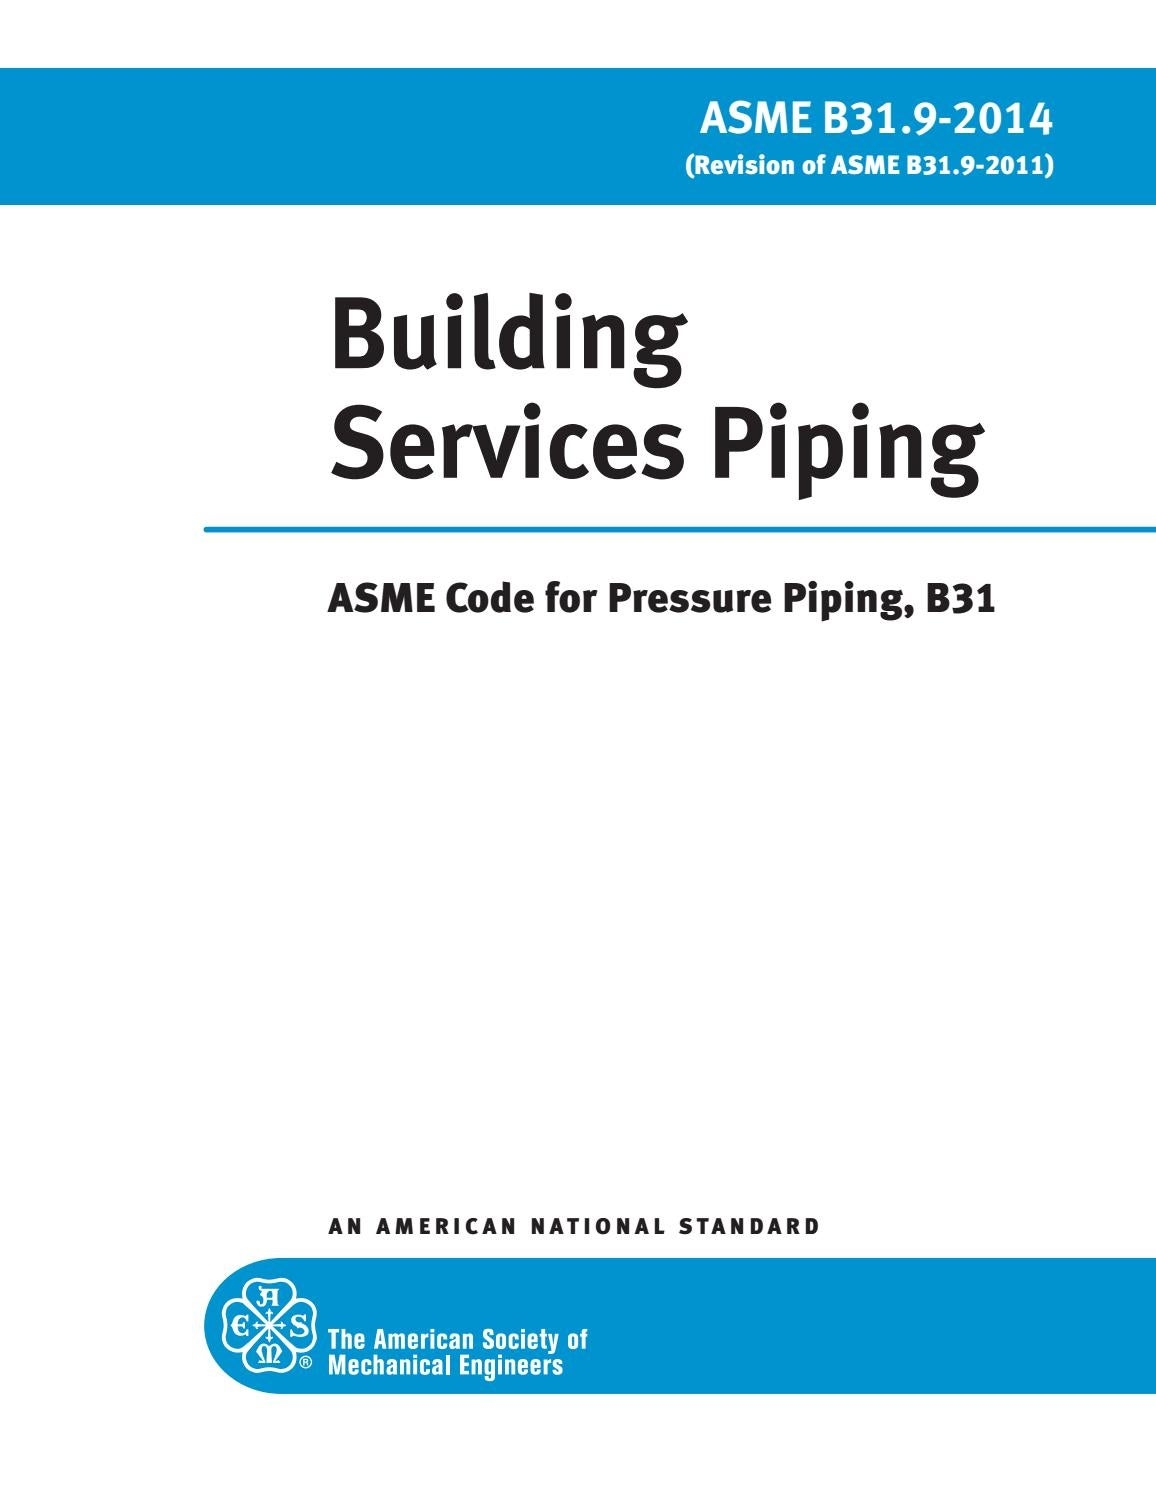 Asmeb319 Buildingservicespiping 2014 By Aung Myat Kyaw Issuu Piping Layout Rules